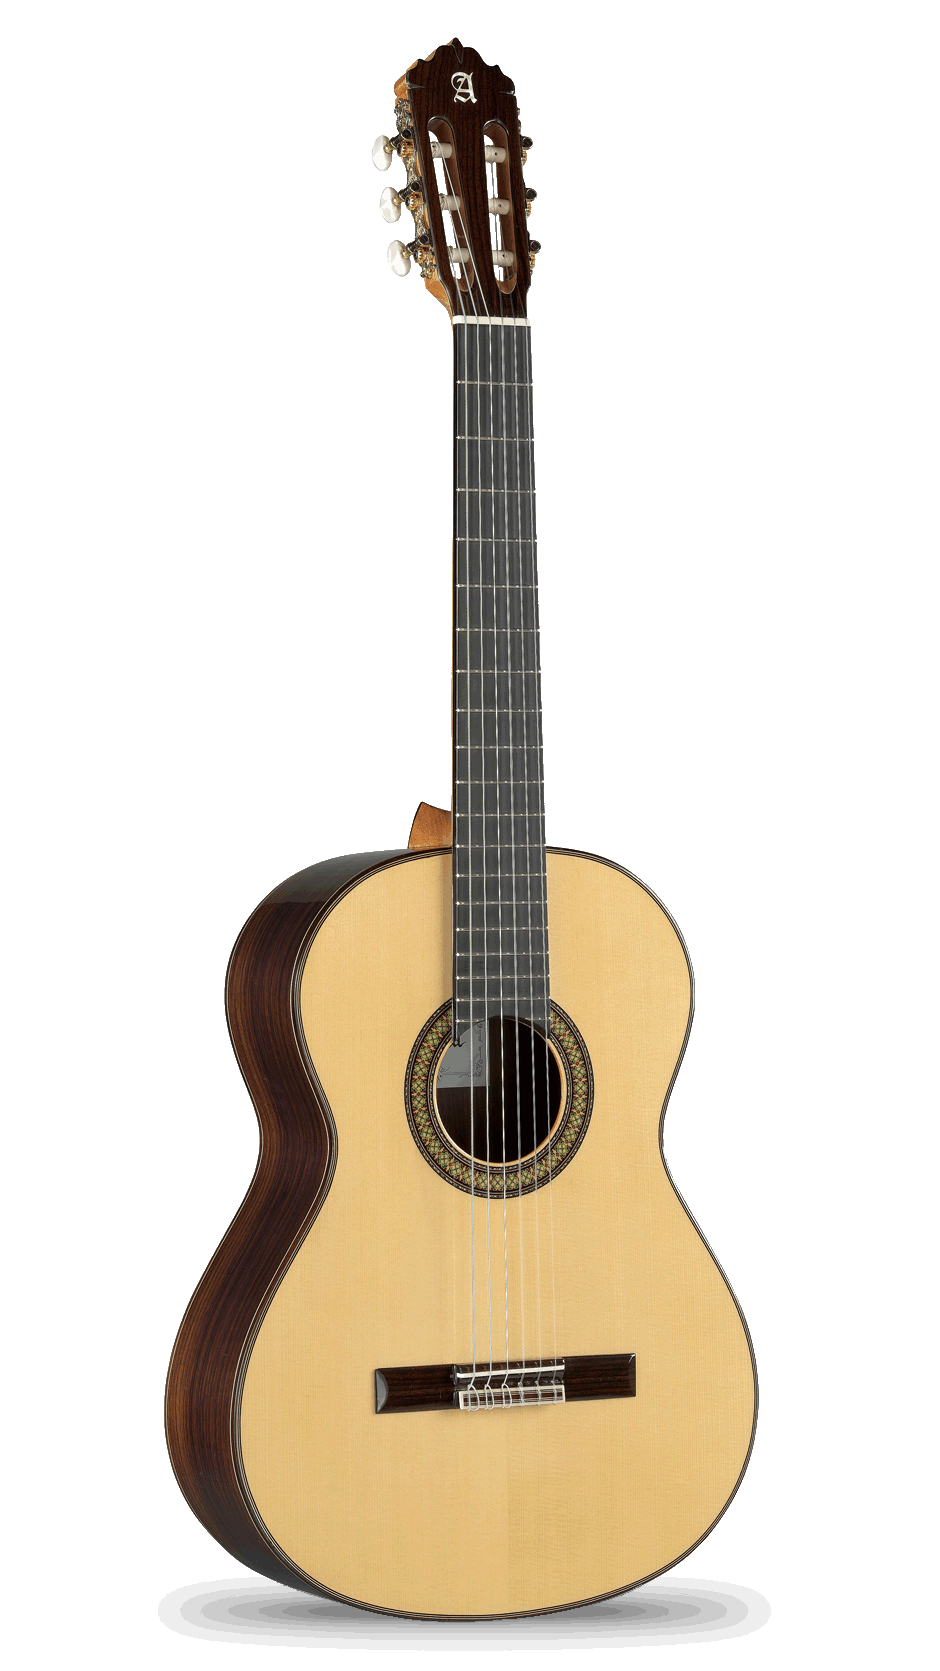 Conservatory Classical guitars by Alhambra Guitars